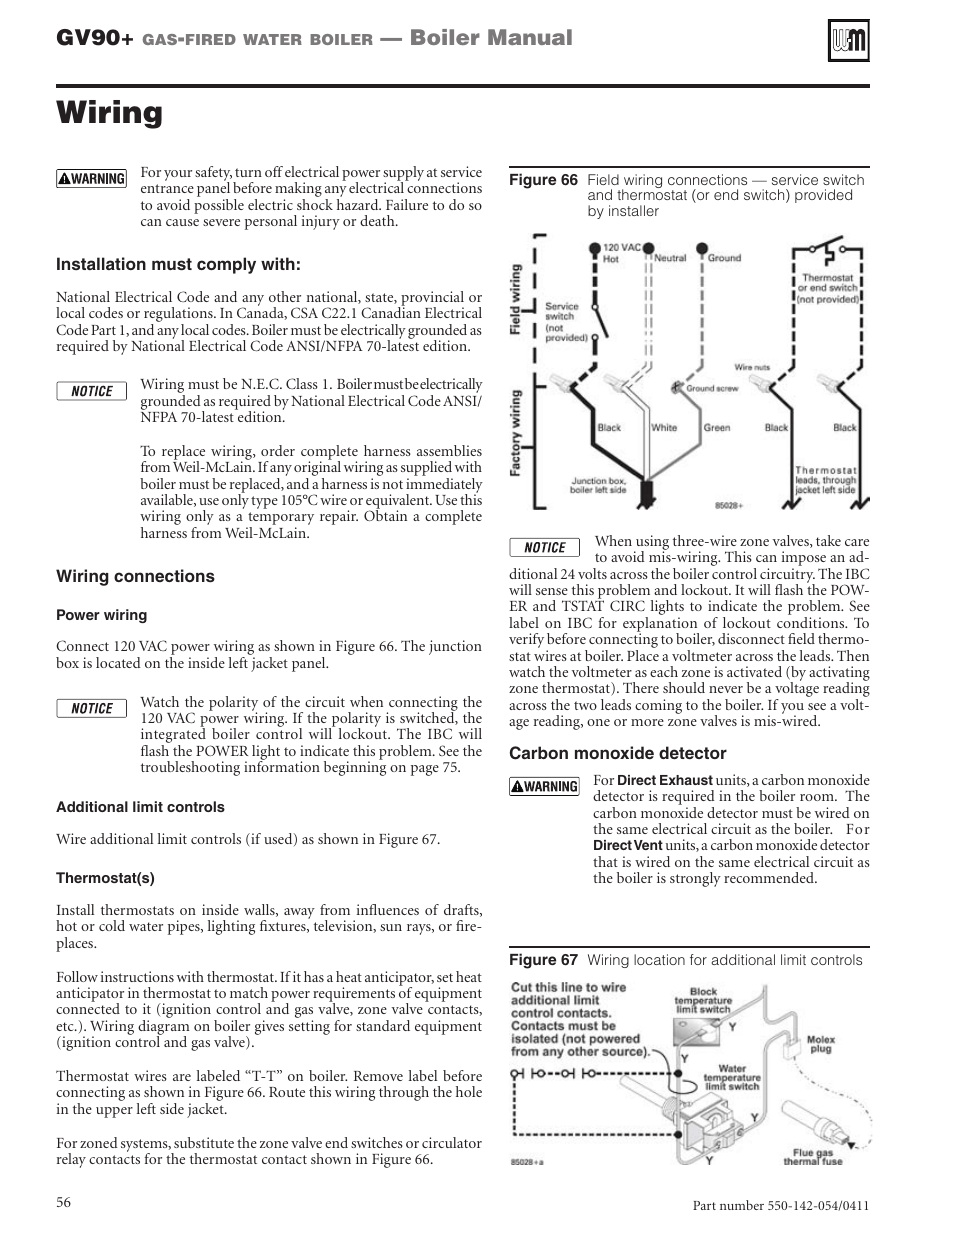 hight resolution of wiring gv90 boiler manual weil mclain gv90 user manual page 56 108